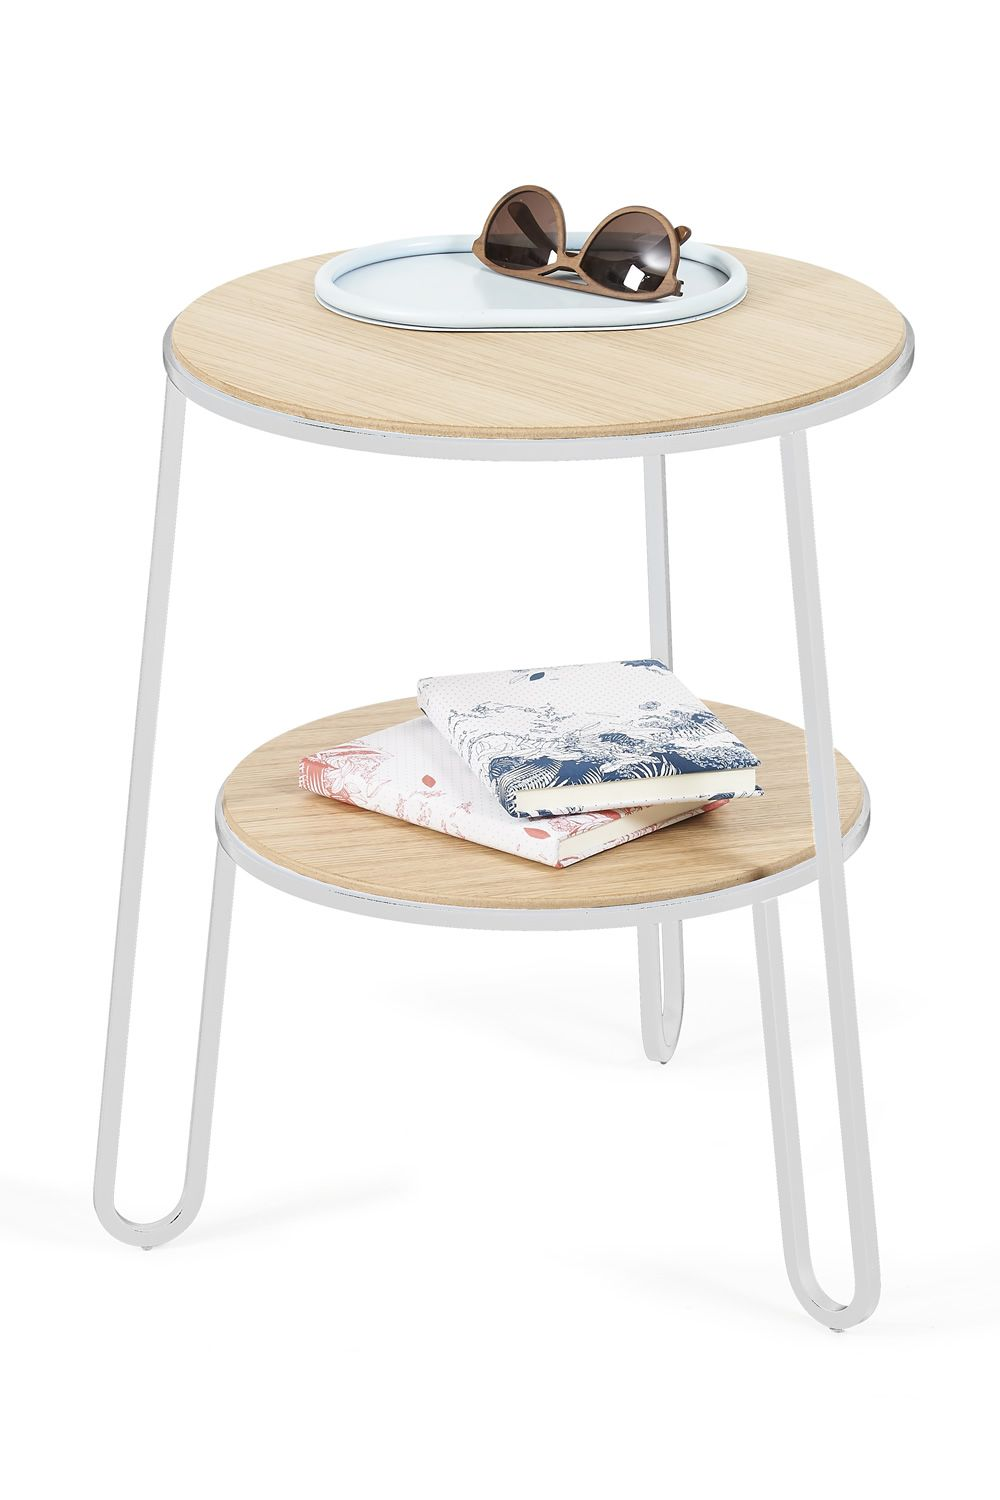 Side table in white varnished metal, with wooden top